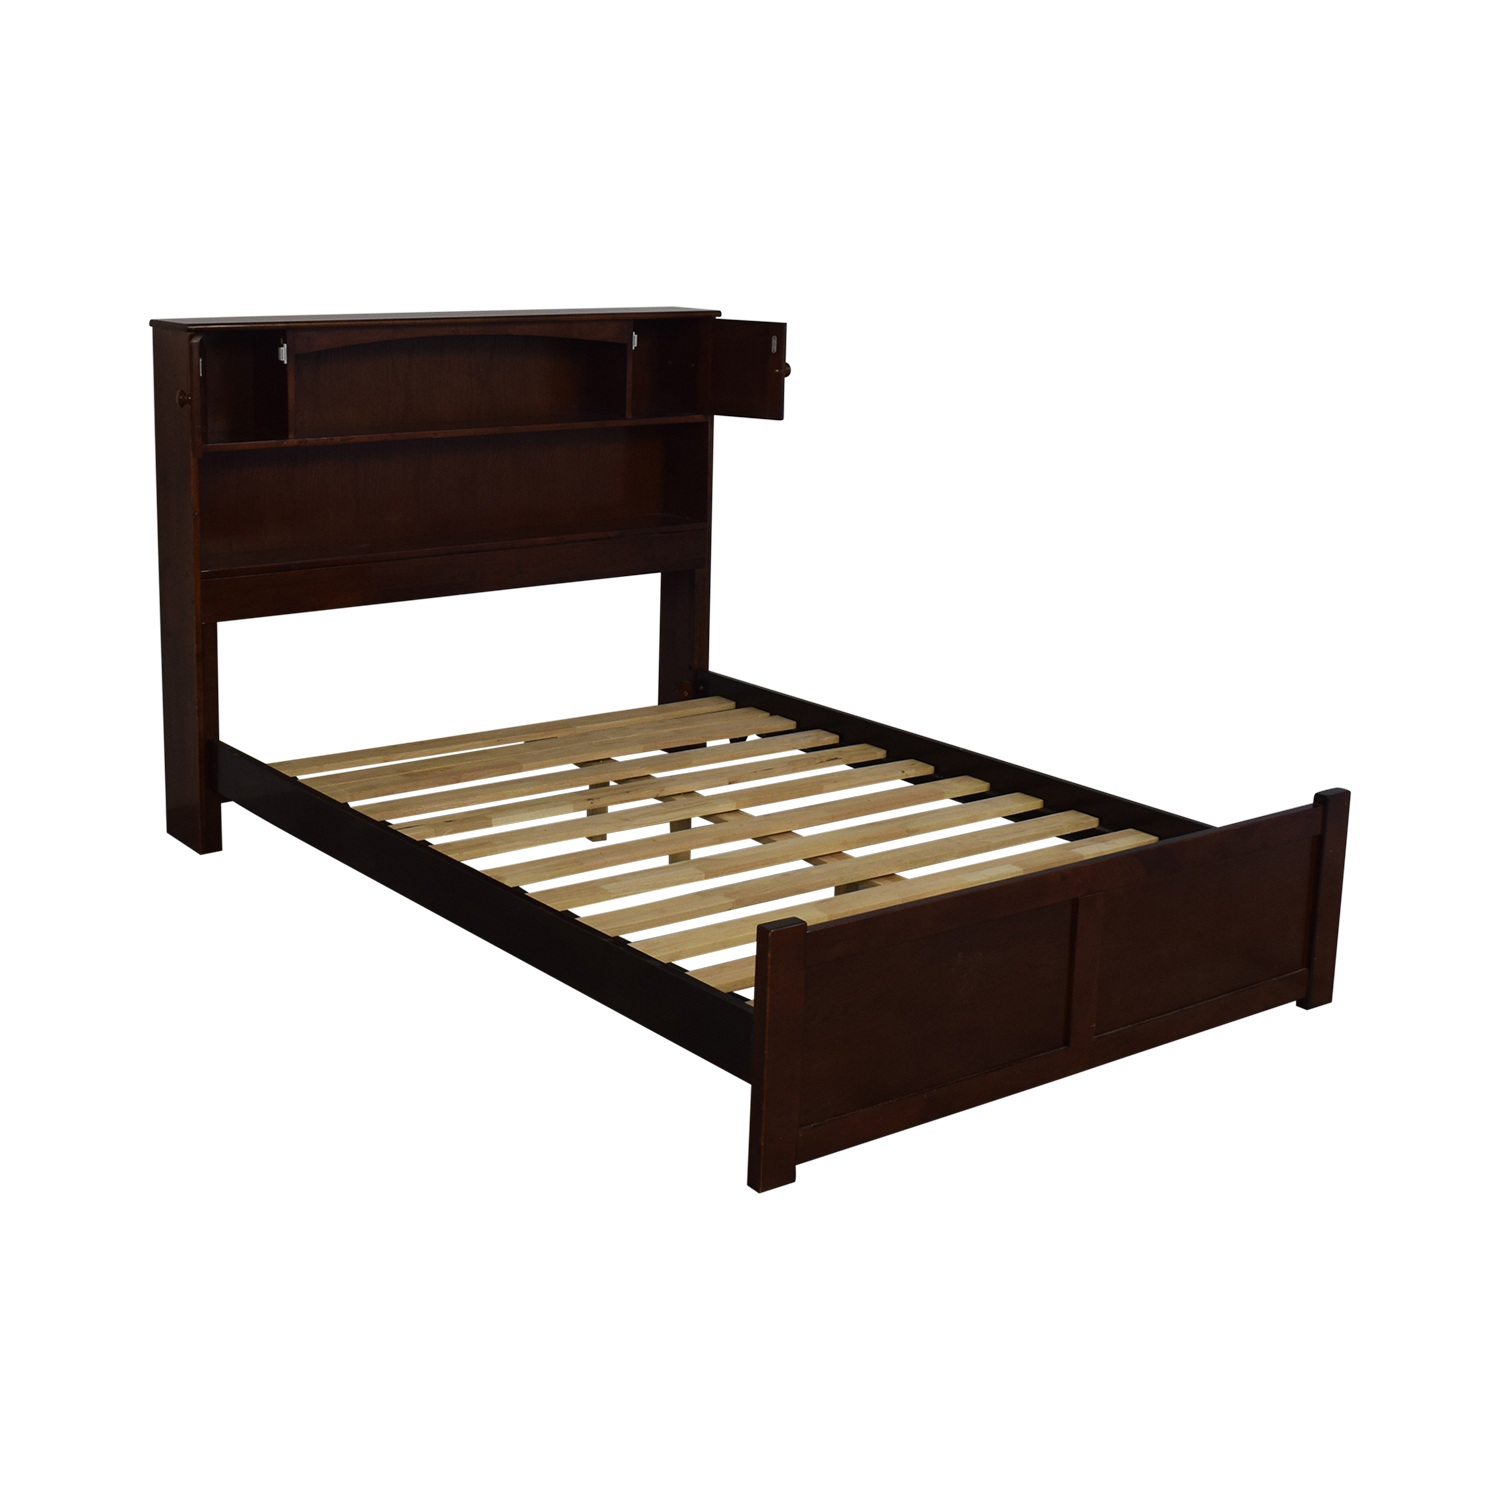 buy Viv + Rae Edwin Platform Full Bed Viv + Rae